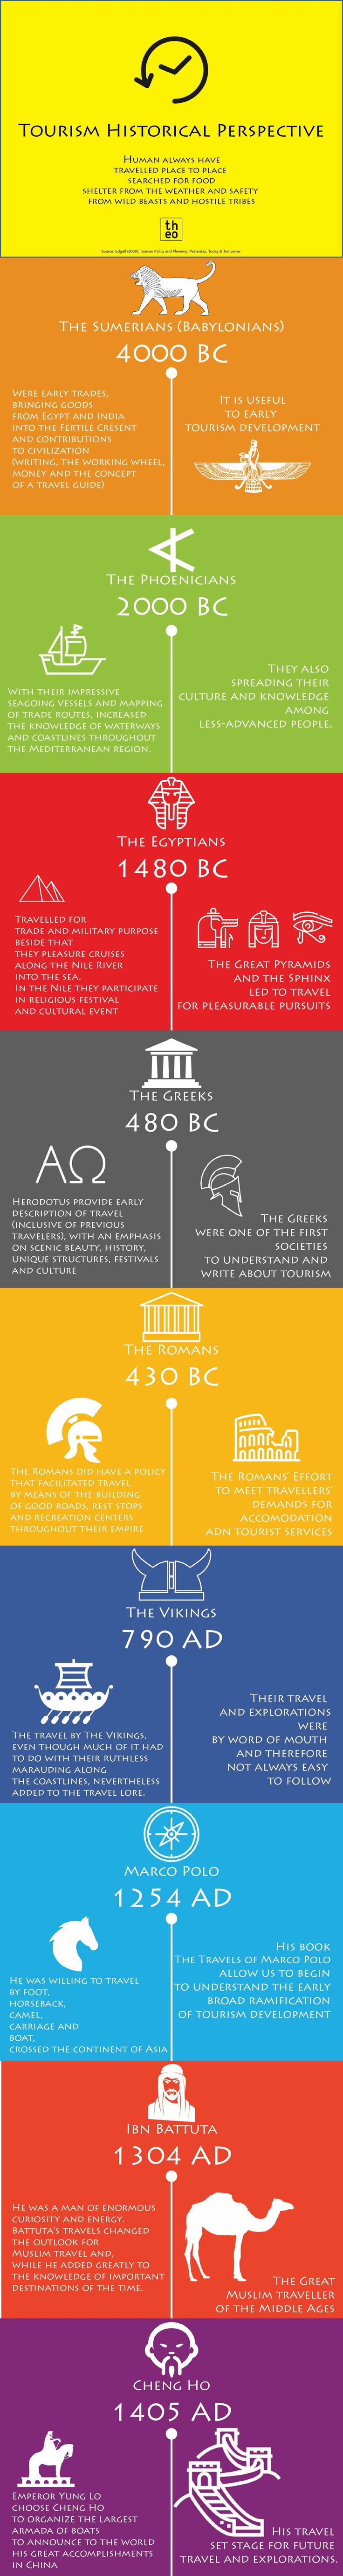 an-infographic-on-tourism-historical-perspective